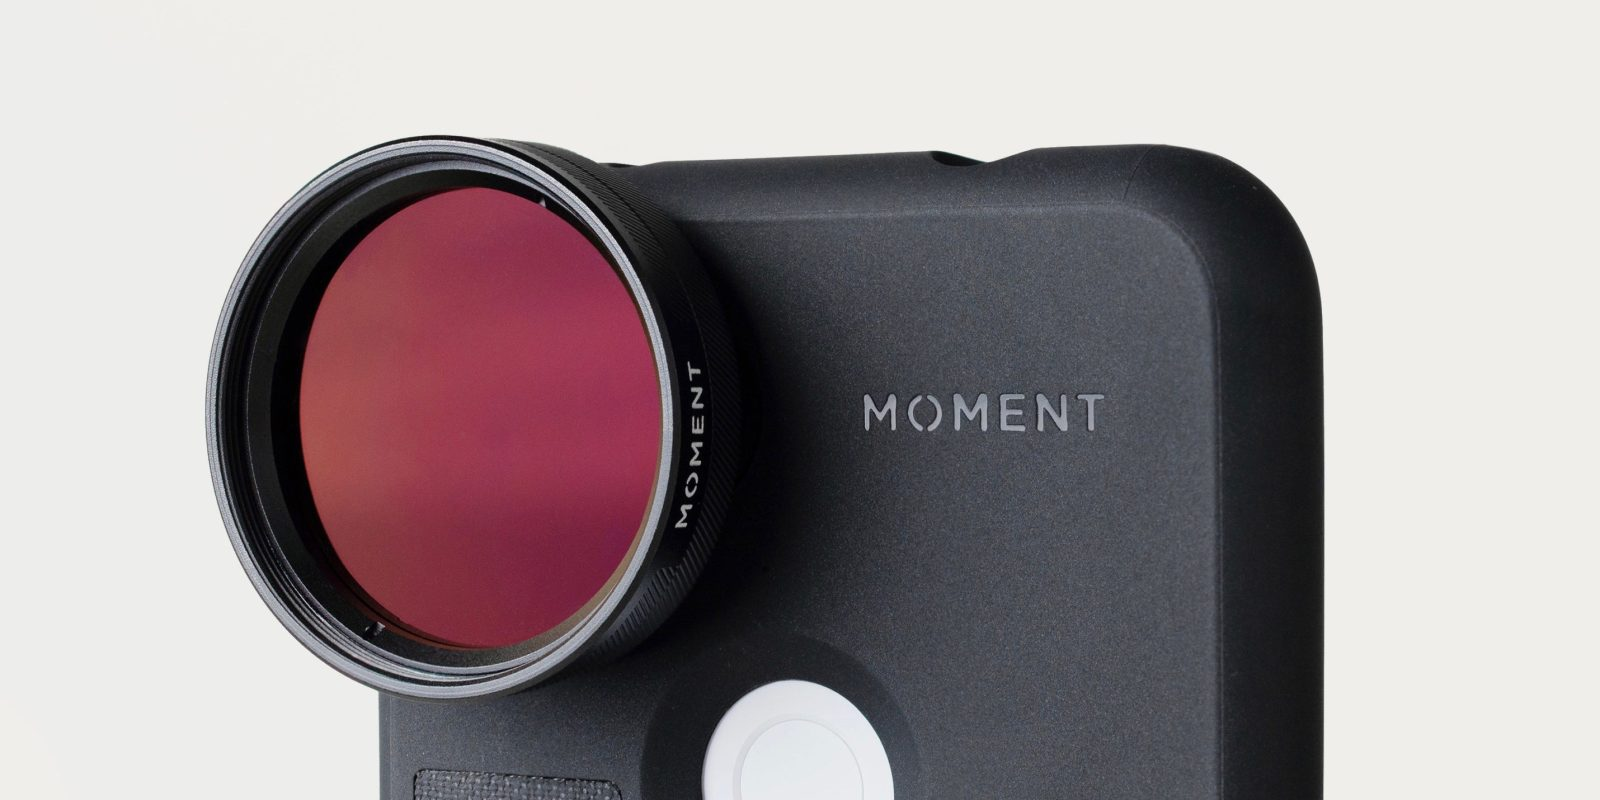 Moment launches 37mm Cine Filters for iPhone and Android devices